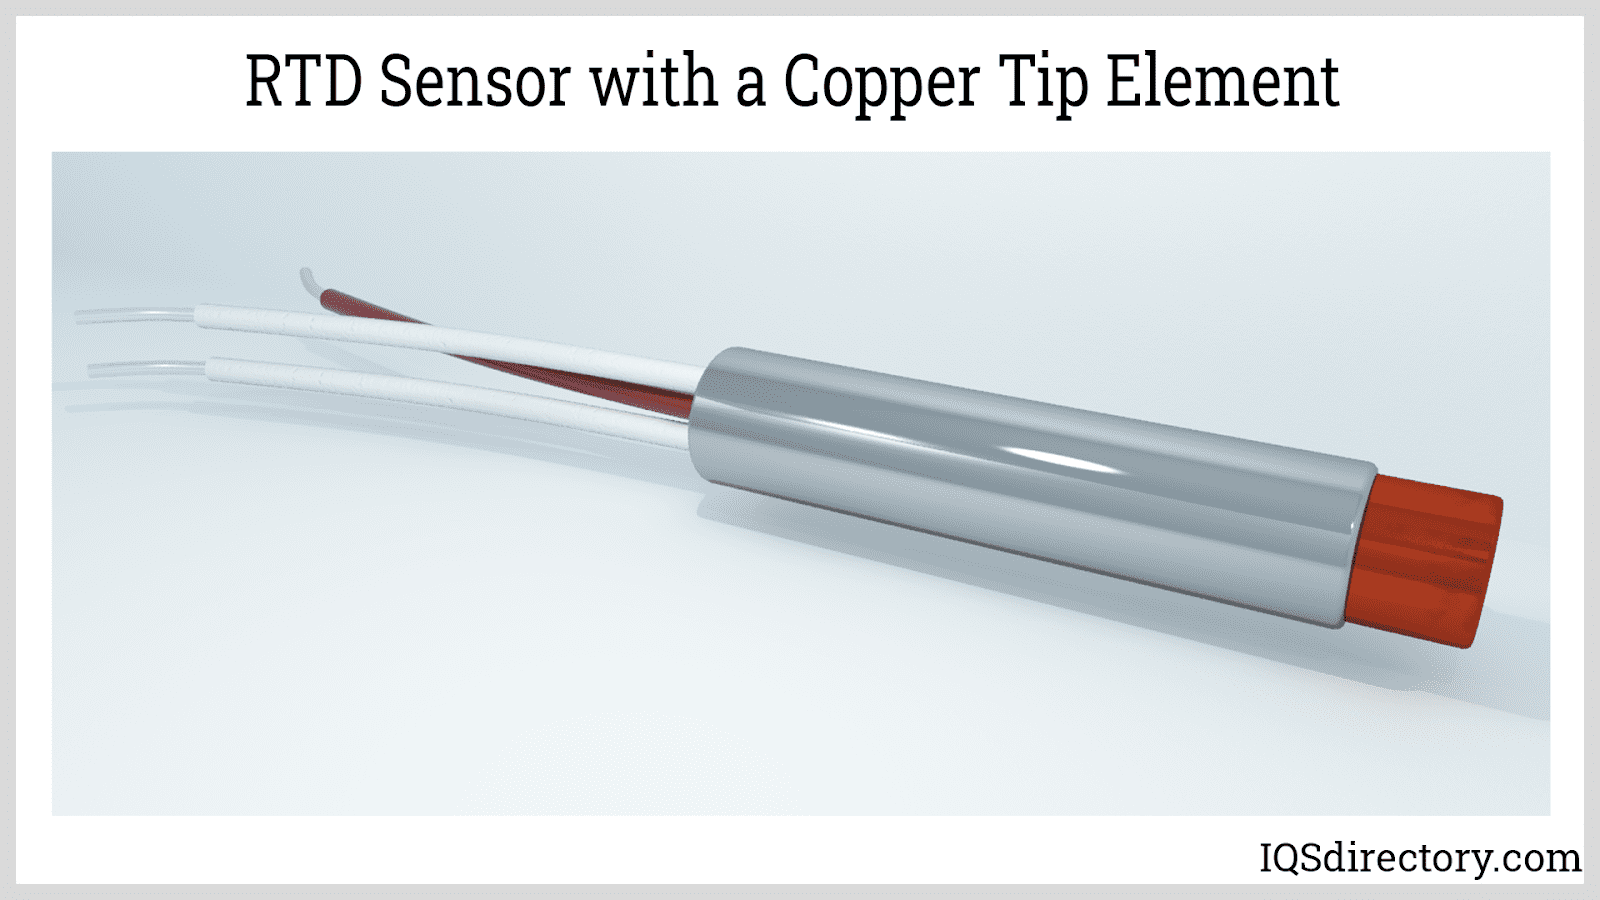 RTD Sensor with a Copper Tip Element